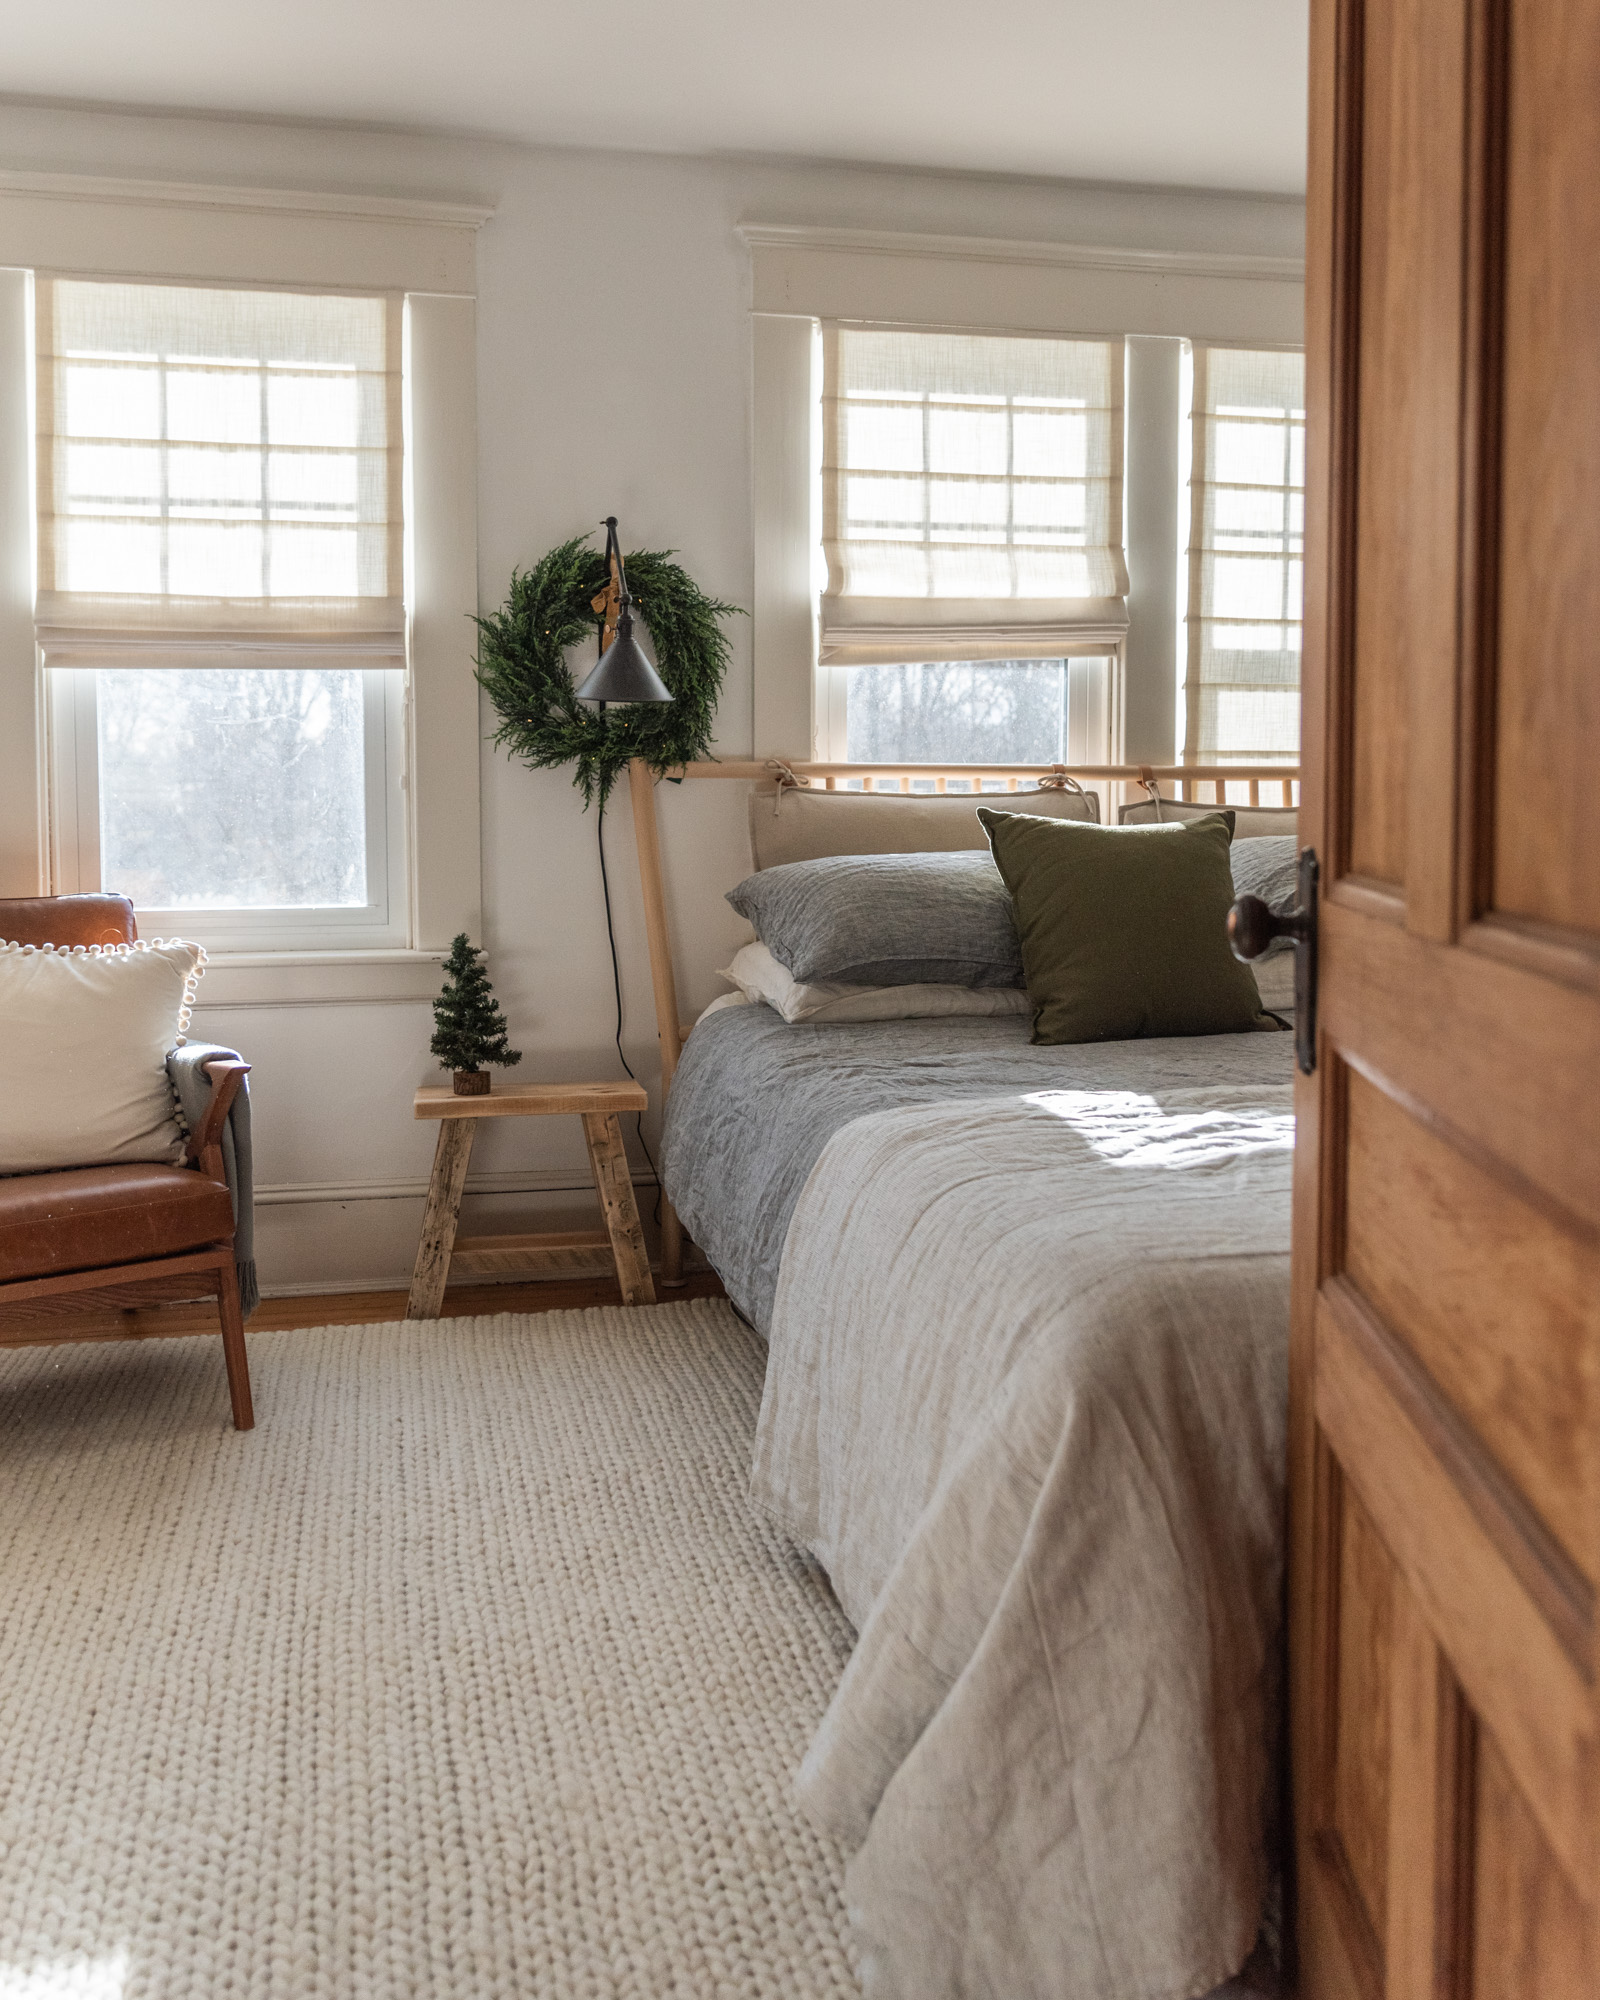 The Wild decoelis | 2020 Holiday Home Tour | Master bedroom with a king size IKEA bedframe in light wood, white linen shades, black sconces with Reese, antique side table milking stool, gray linen bedding. White braided rug USA Leather chair